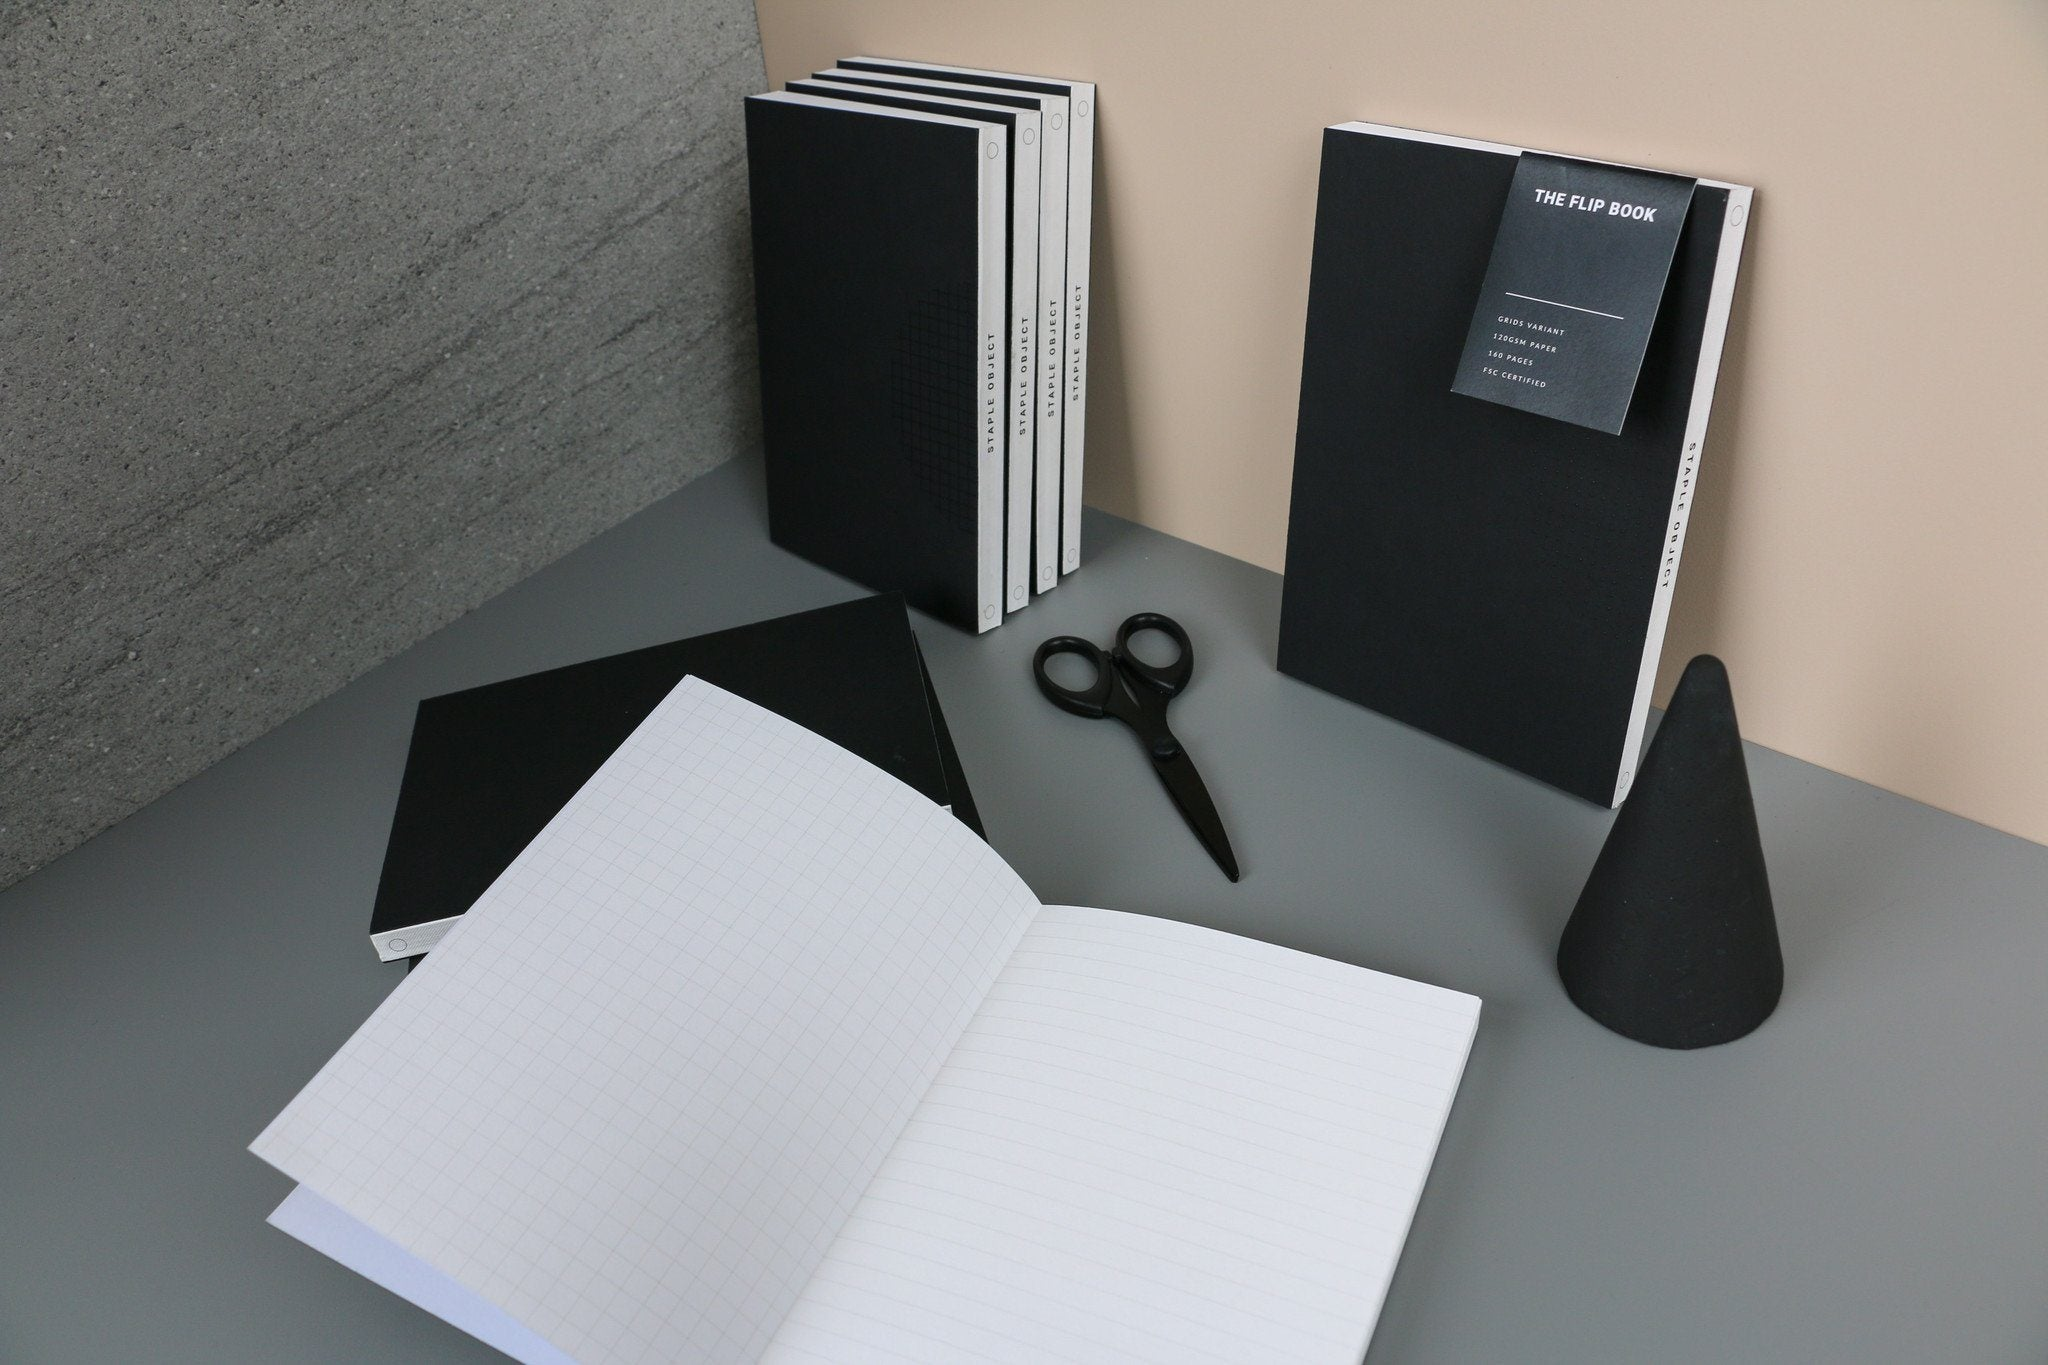 The Flip Book - Dot/Dot - Notebooks - Staple Object - Naiise